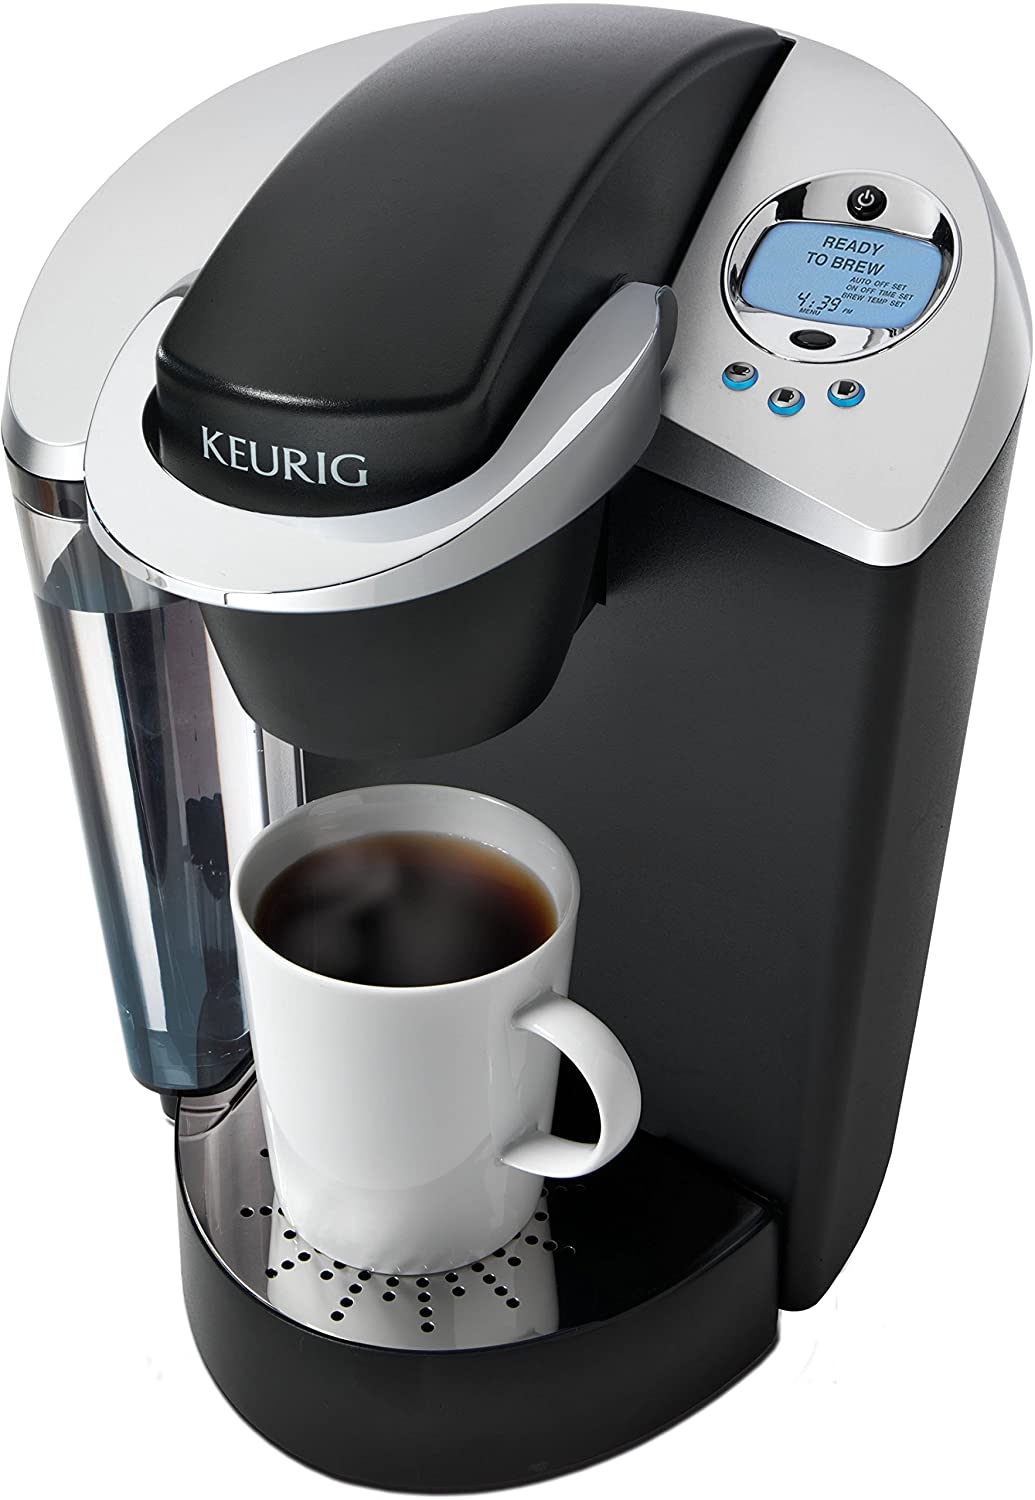 Keurig K60/K65 Special Edition & Signature Brewers Single Cup Brewing System